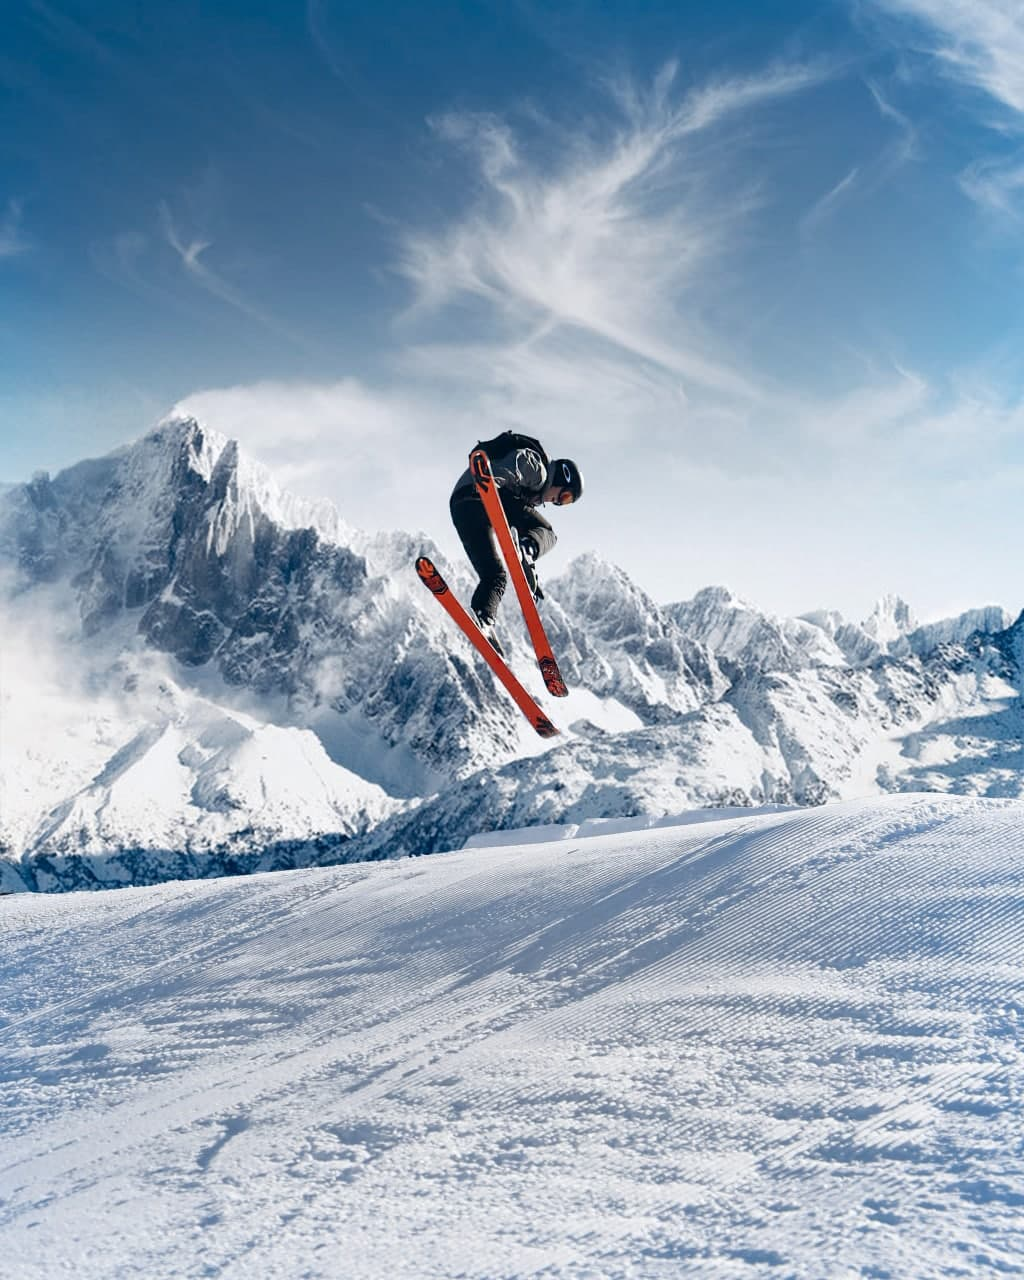 Espace San Bernardo is a wide international ski area between Italy and France, a reference point for ski lovers. A paradise offering 160 km of slopes for all levels. For the more adventurous skiers La Thuile offers a great variety of off-piste routes.